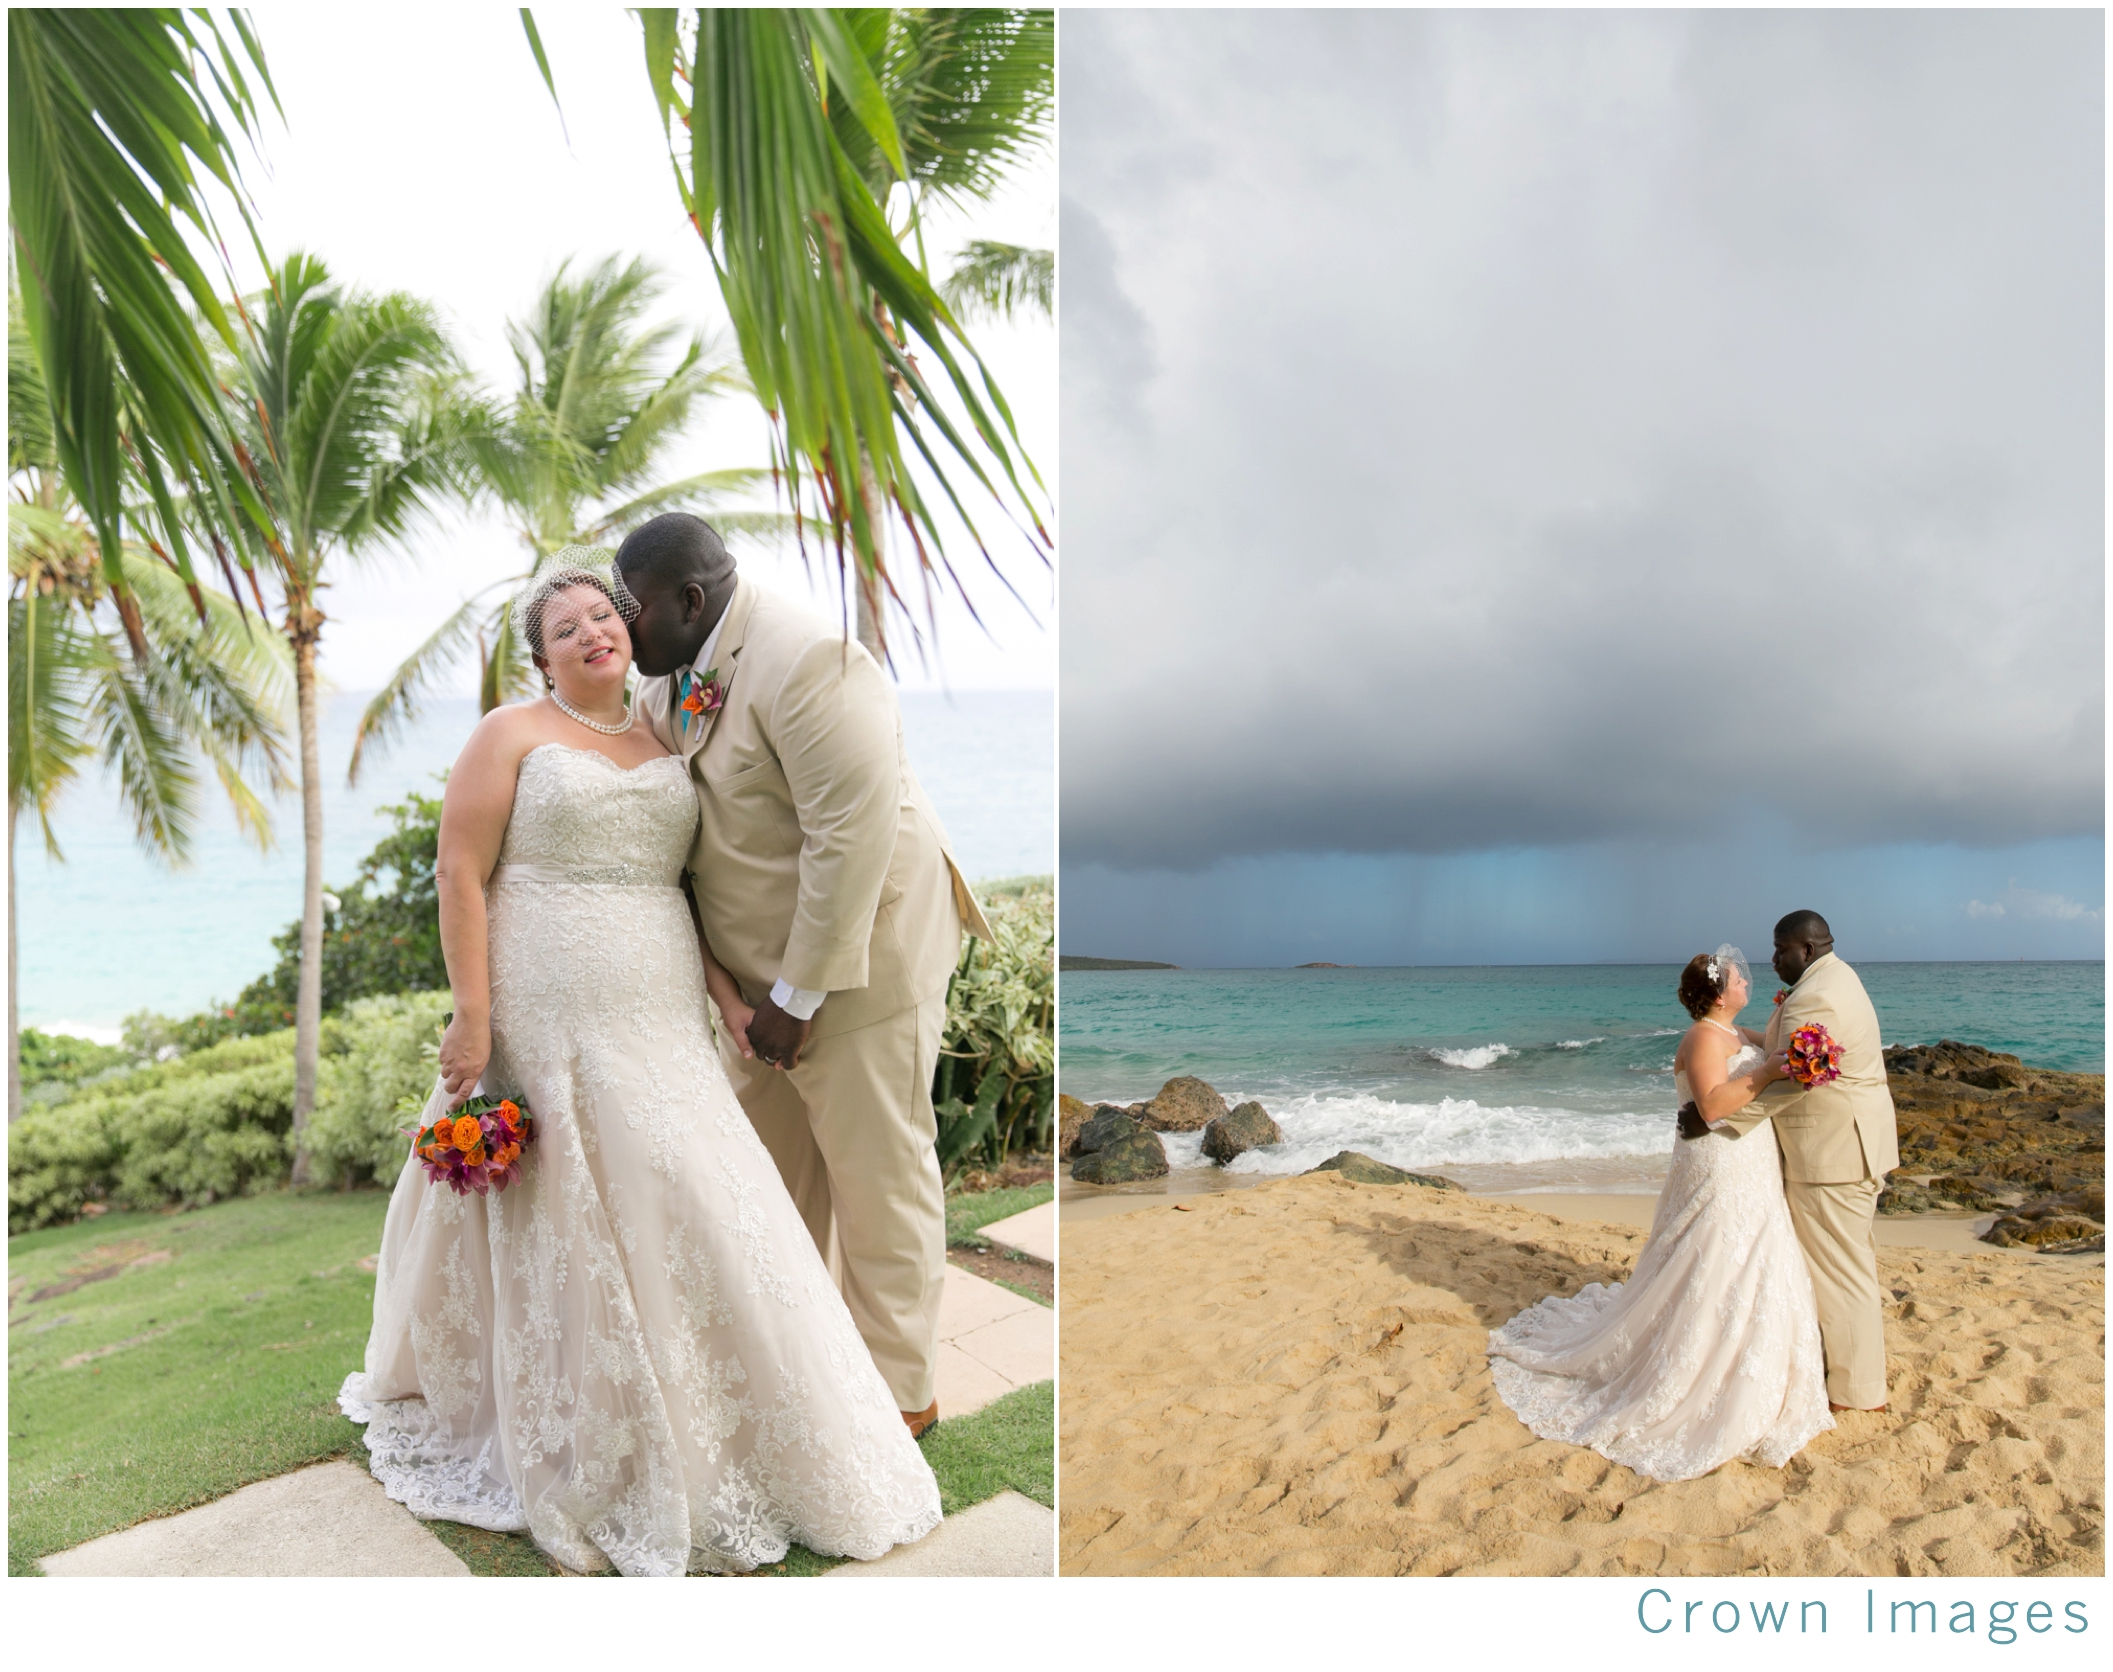 st thomas wedding photos at the marriott crown images_1708.jpg